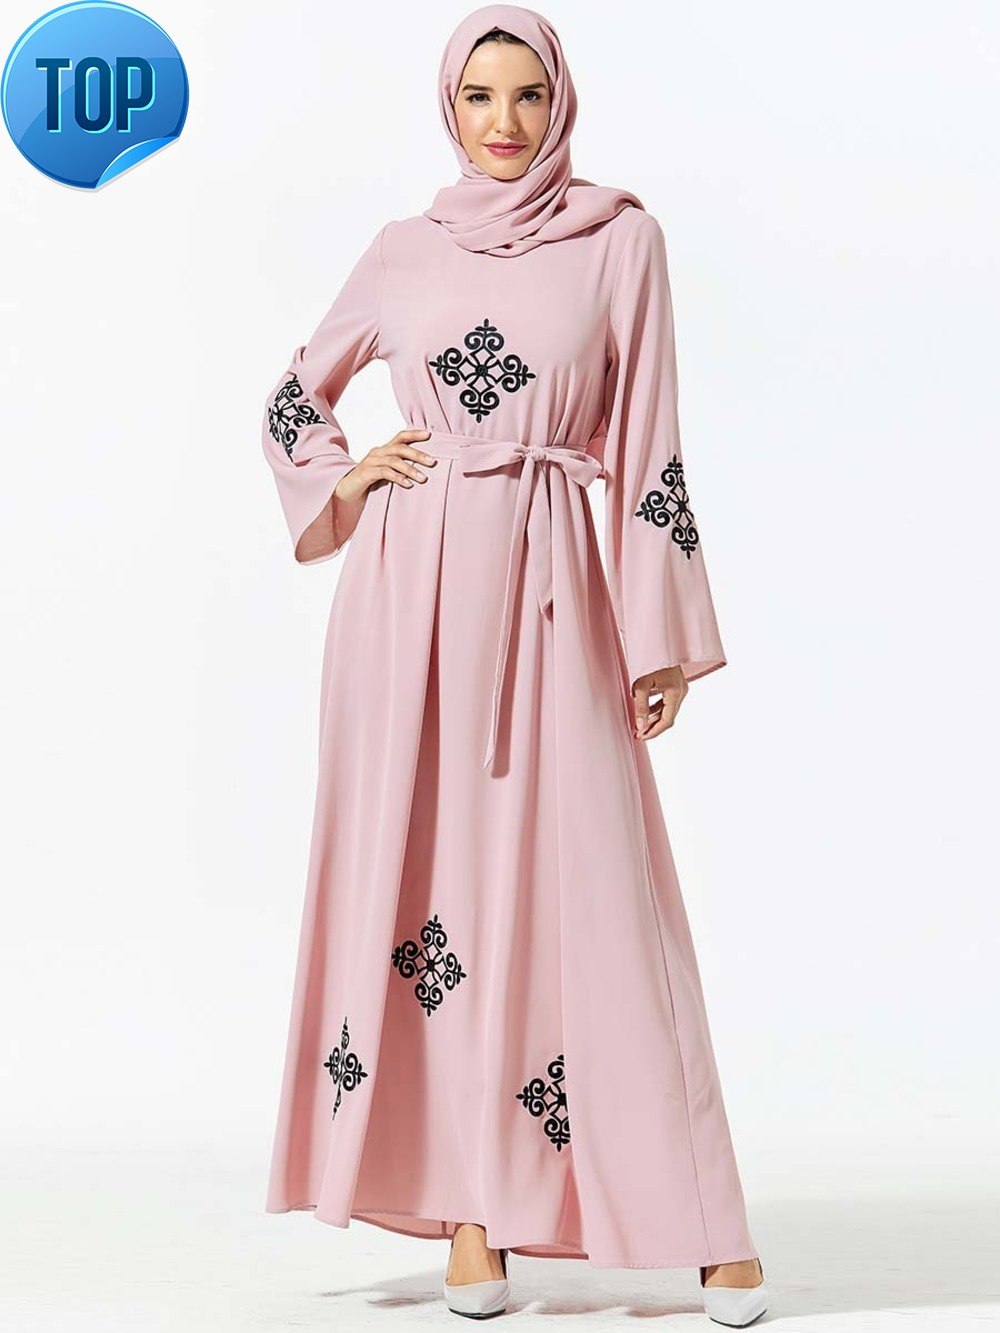 Hot Embroidery African Dresses For Women Long Sleeve Muslim Wedding Dress With Hijab Dress For Ladies No Headscarf